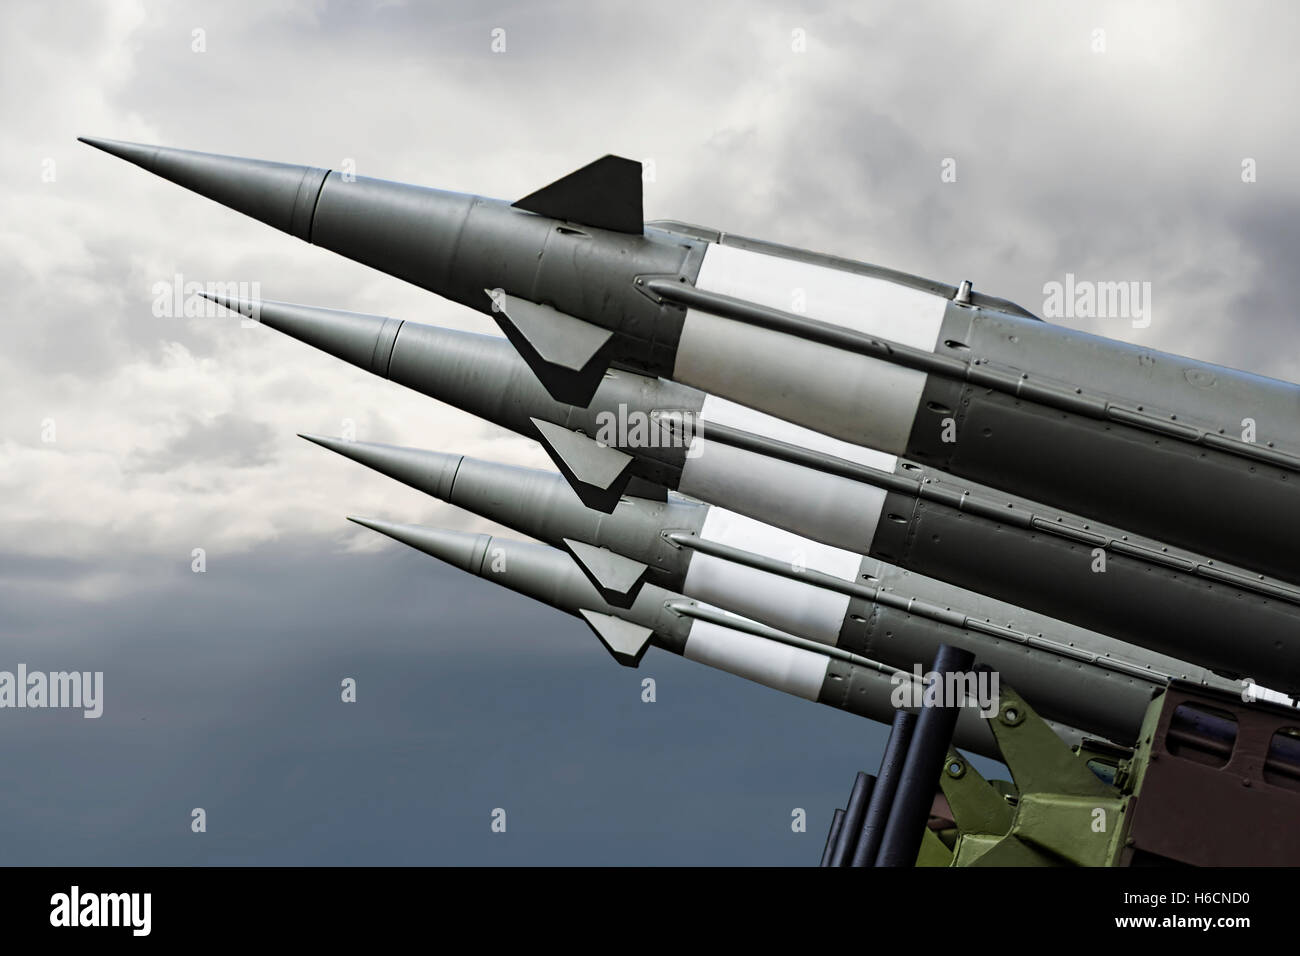 Nuclear Missiles With Warhead Aimed at Gloomy Sky. Balistic Rockets War Background. - Stock Image